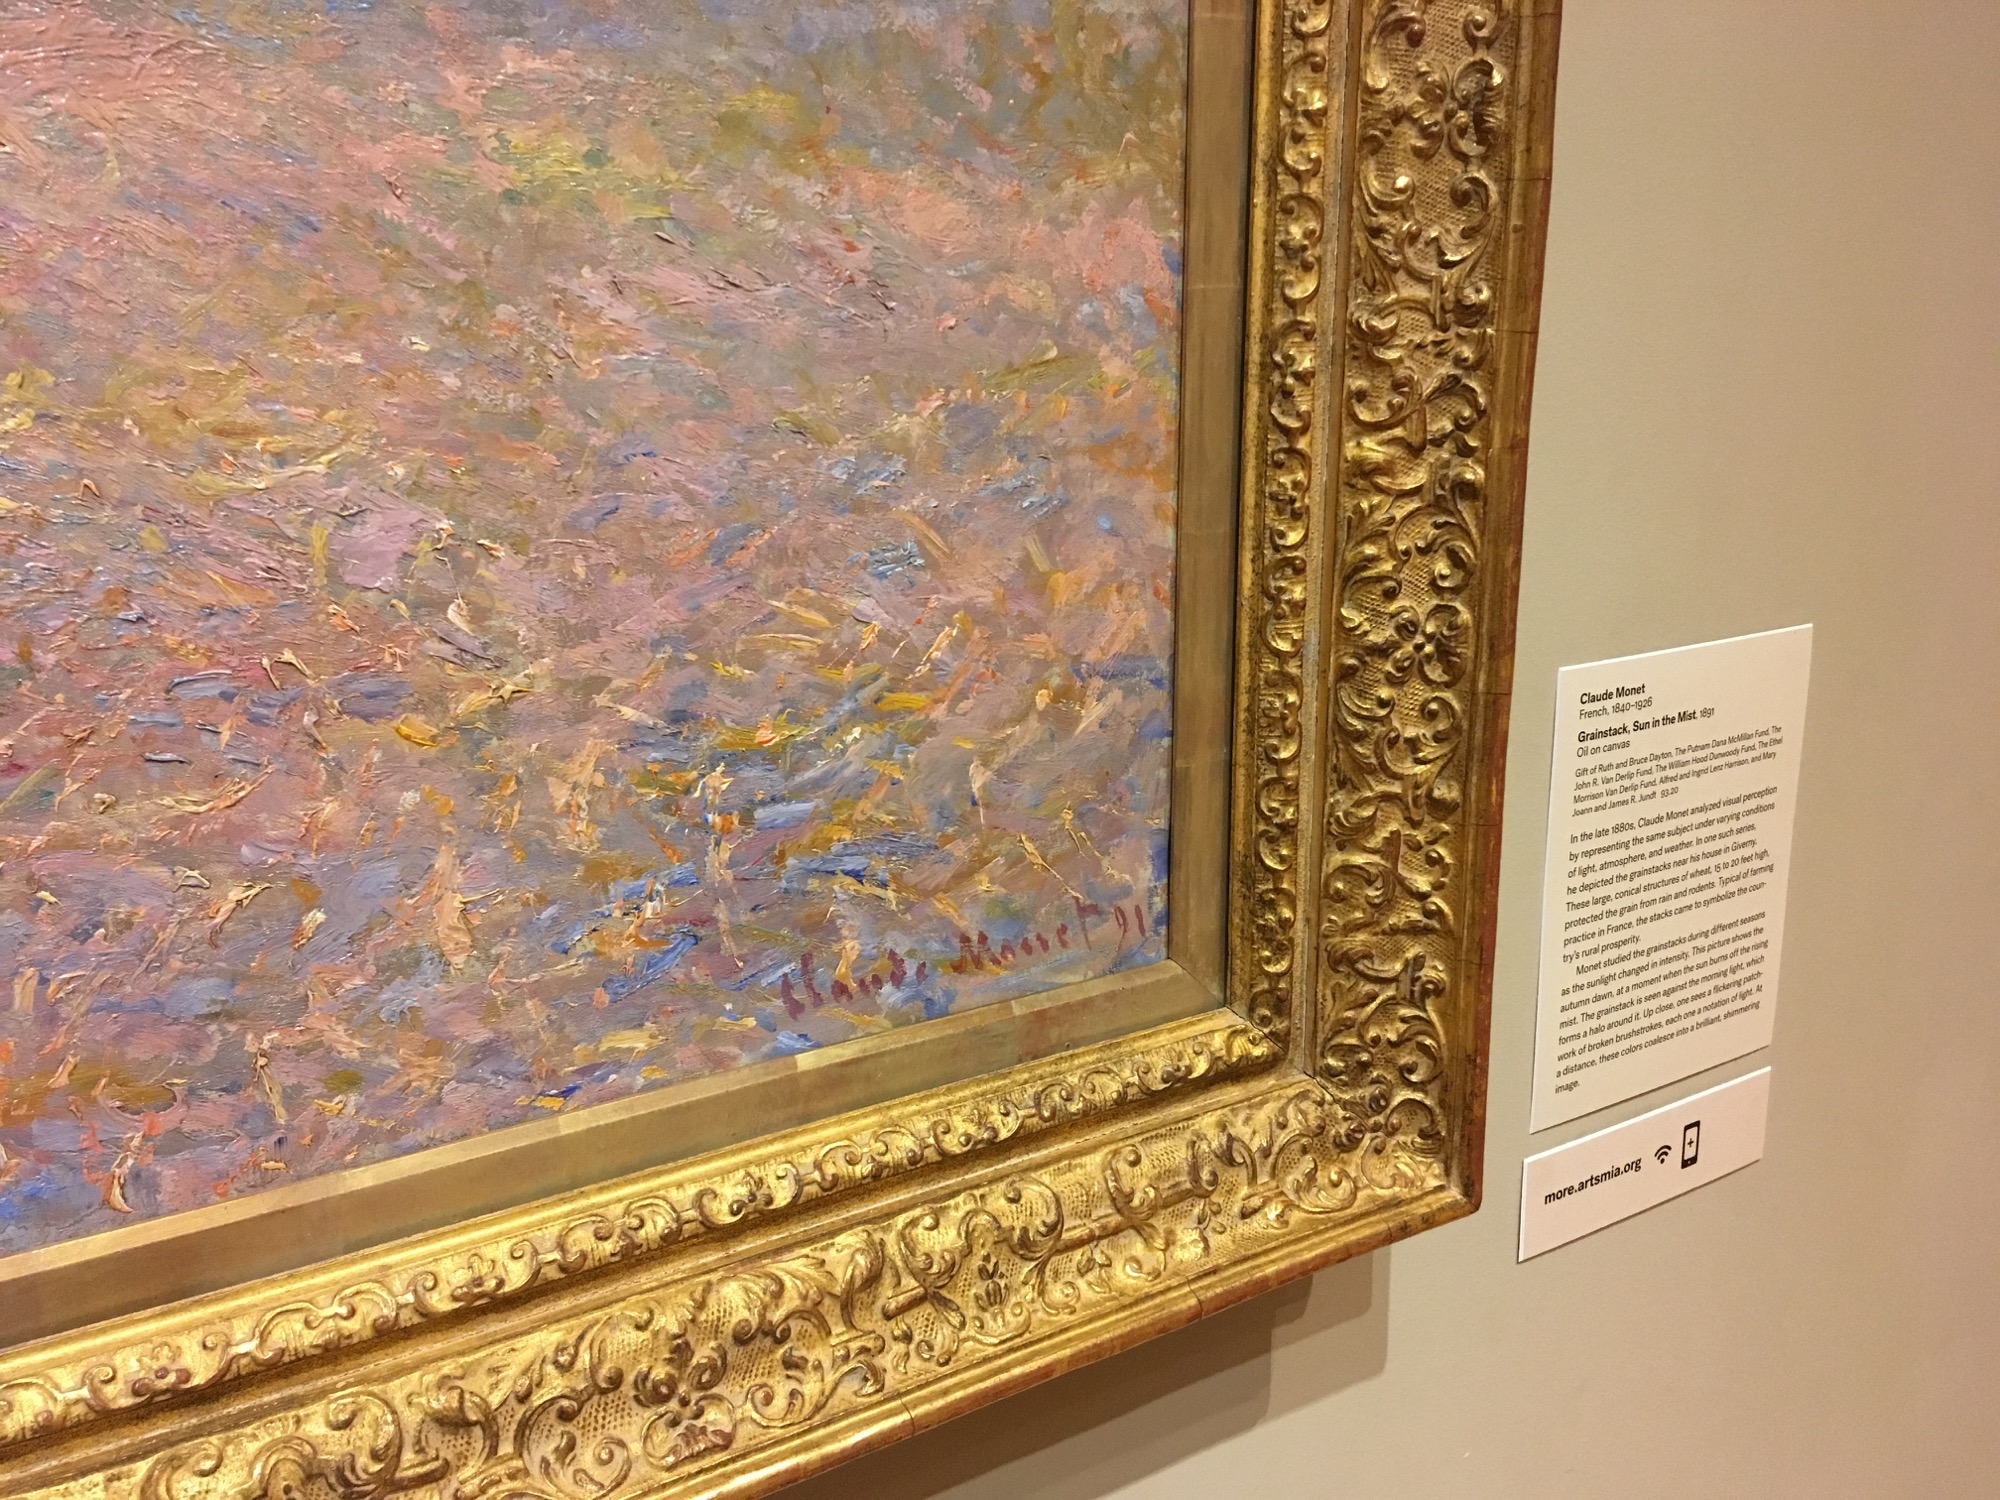 bottom corner of monet painting showing only signature